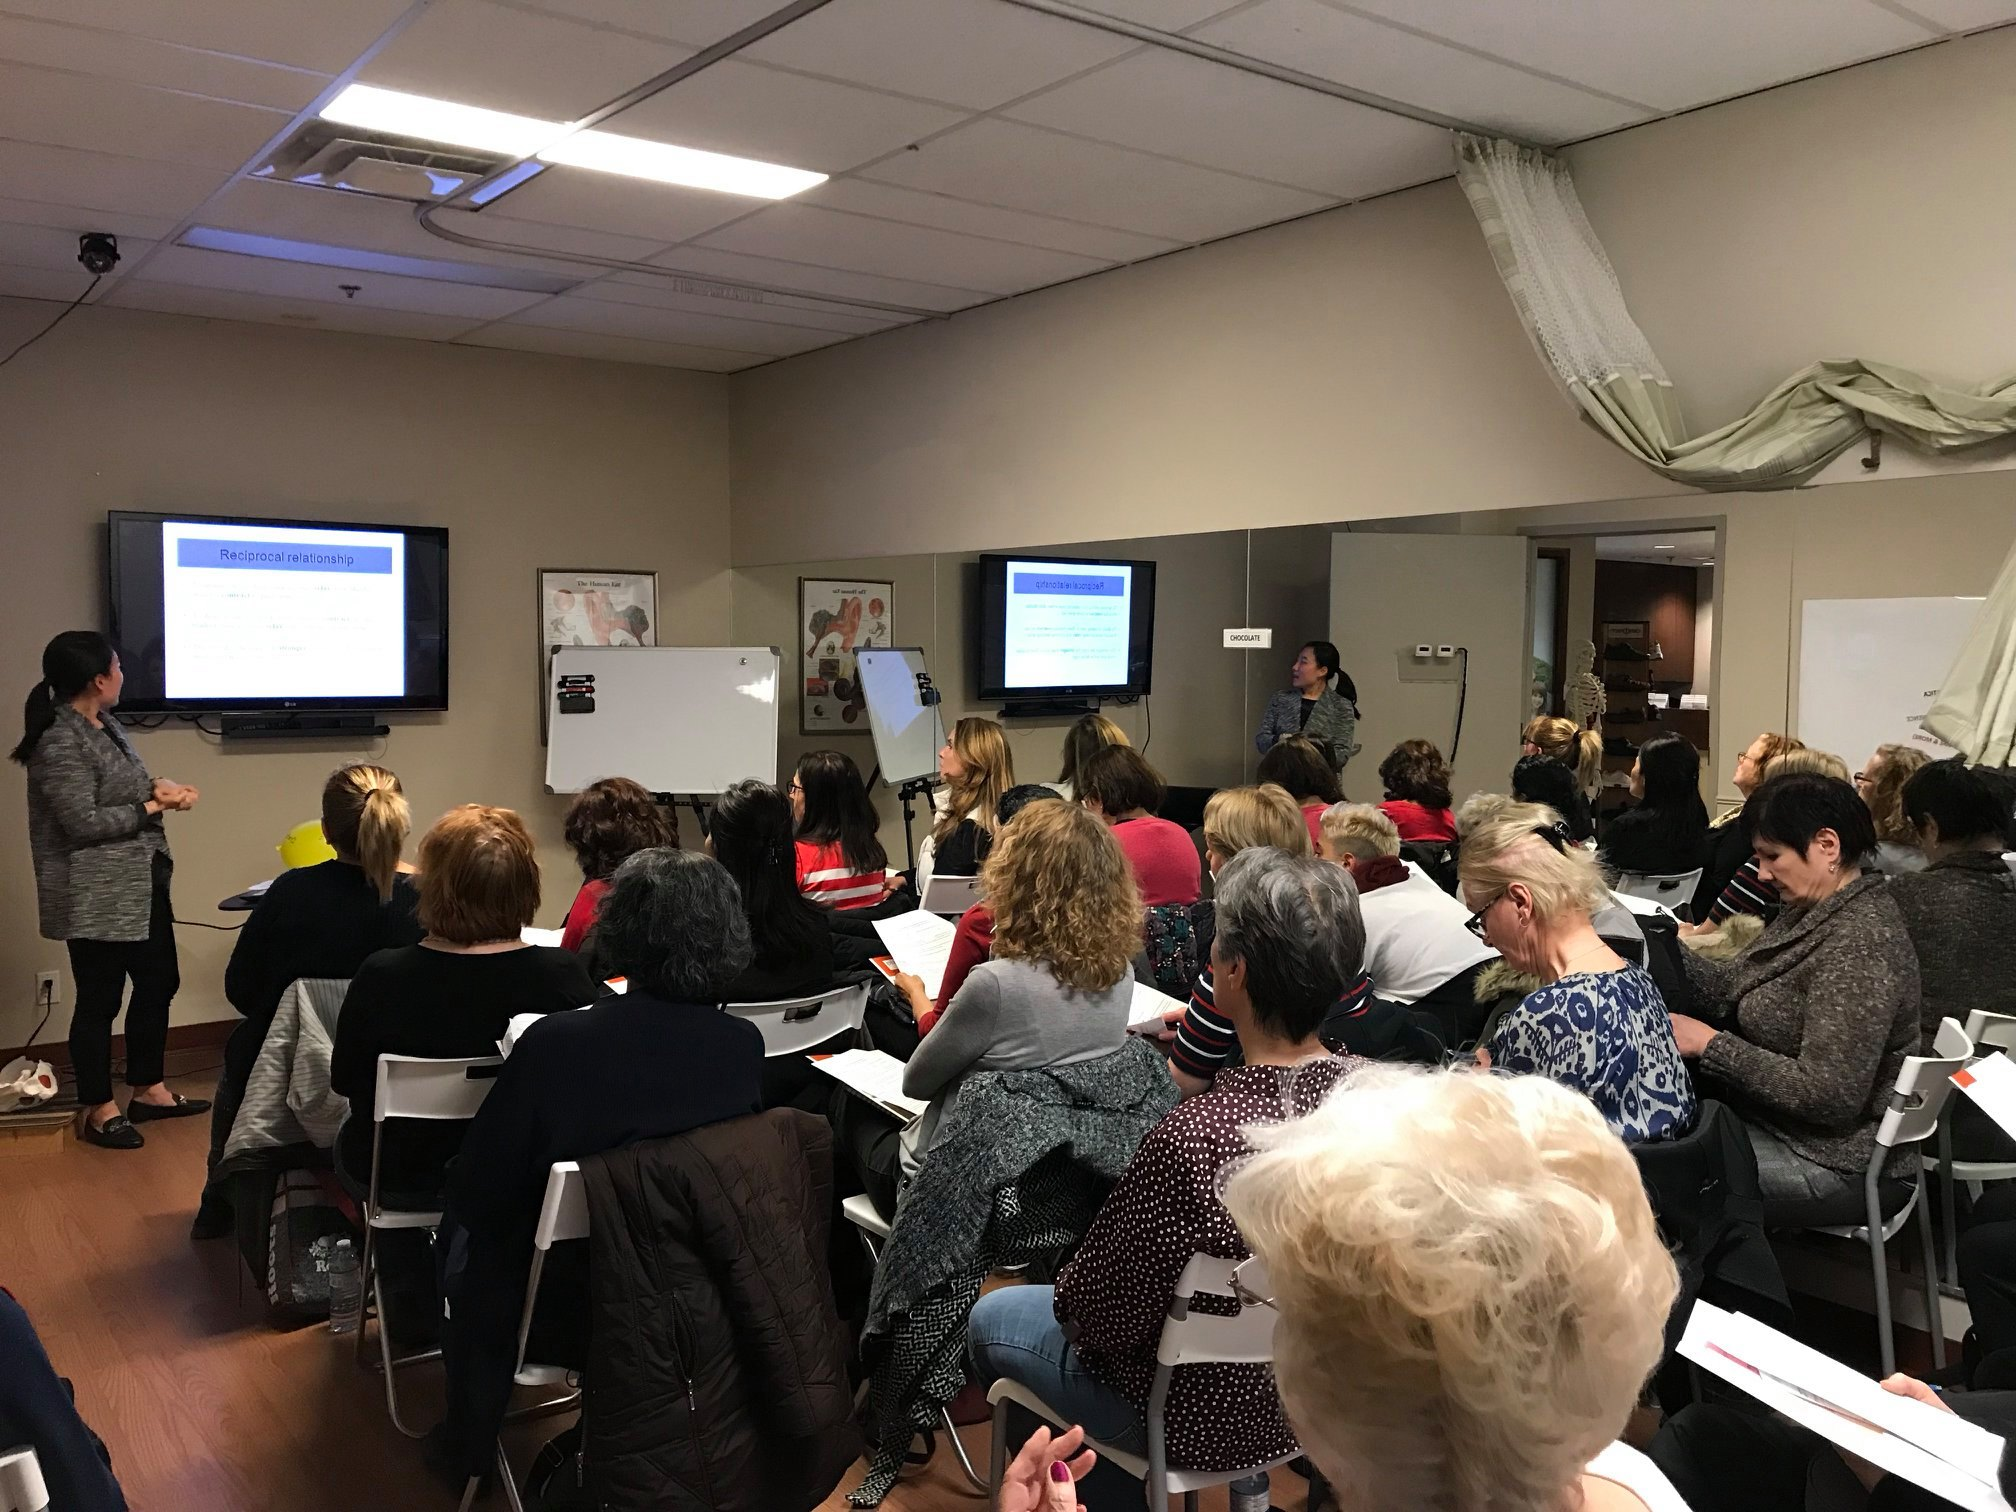 Pelvic & Incontinence workshop in Toronto